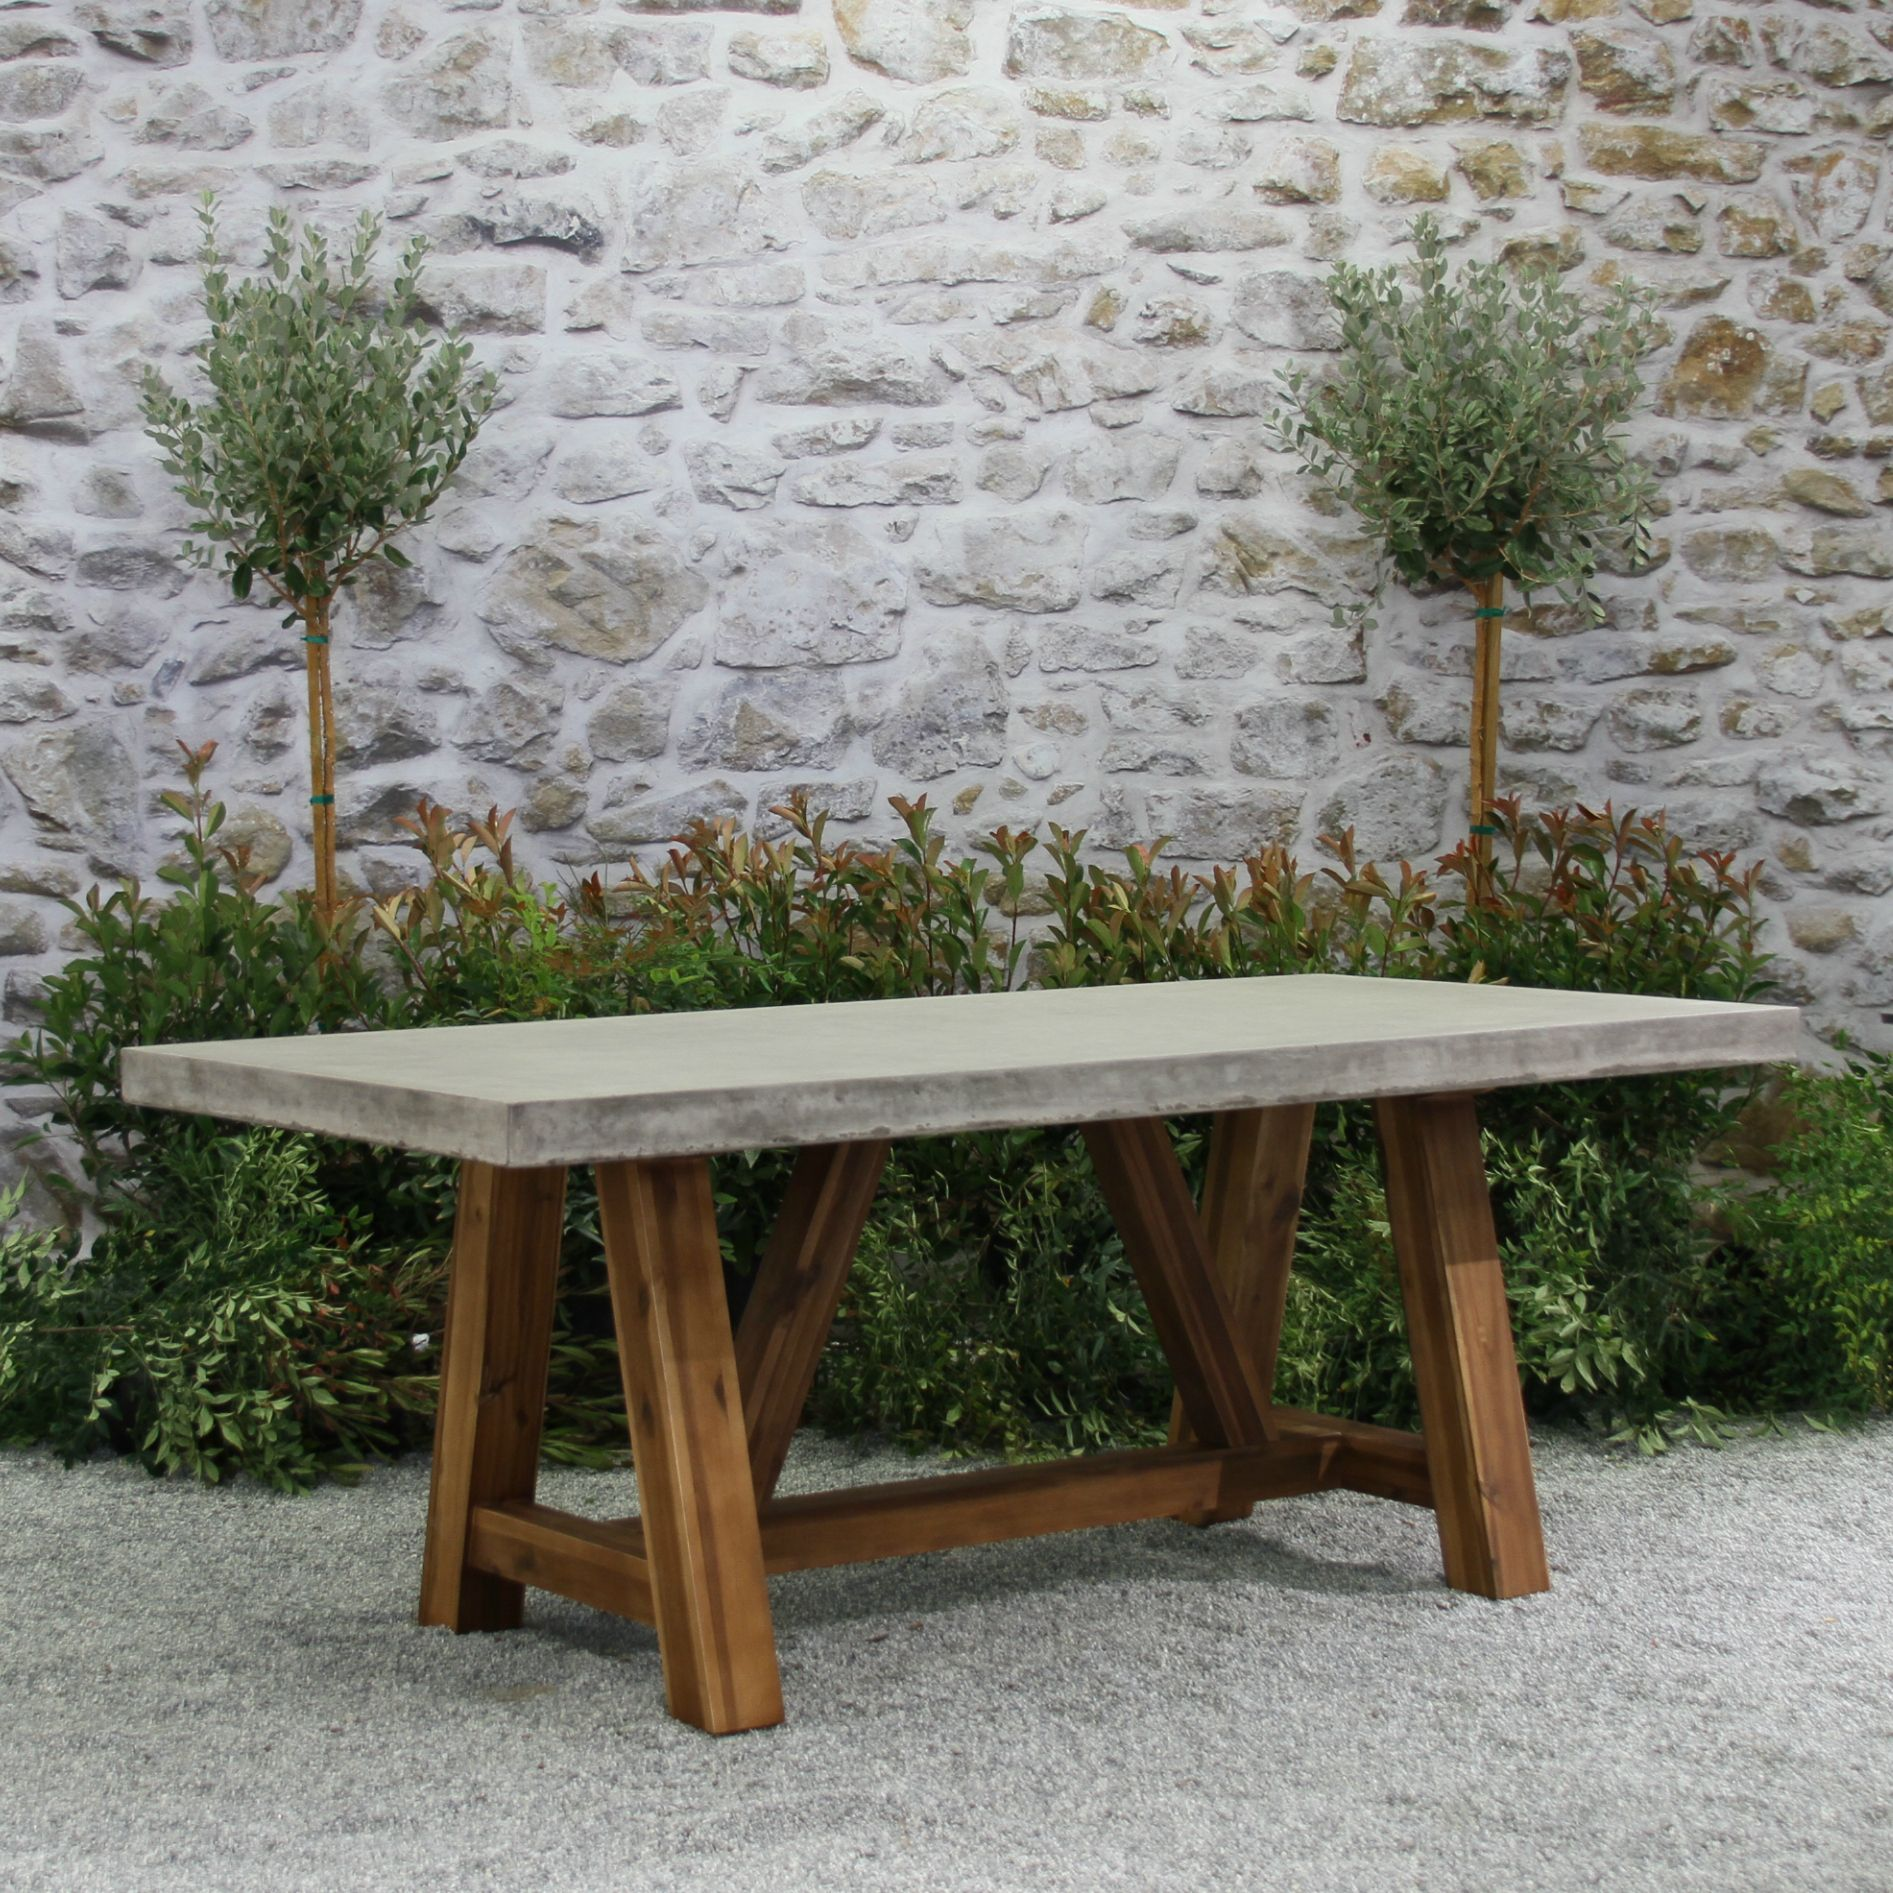 Outdoor Tables On Sale Now. An Outdoor Table From Our Teak